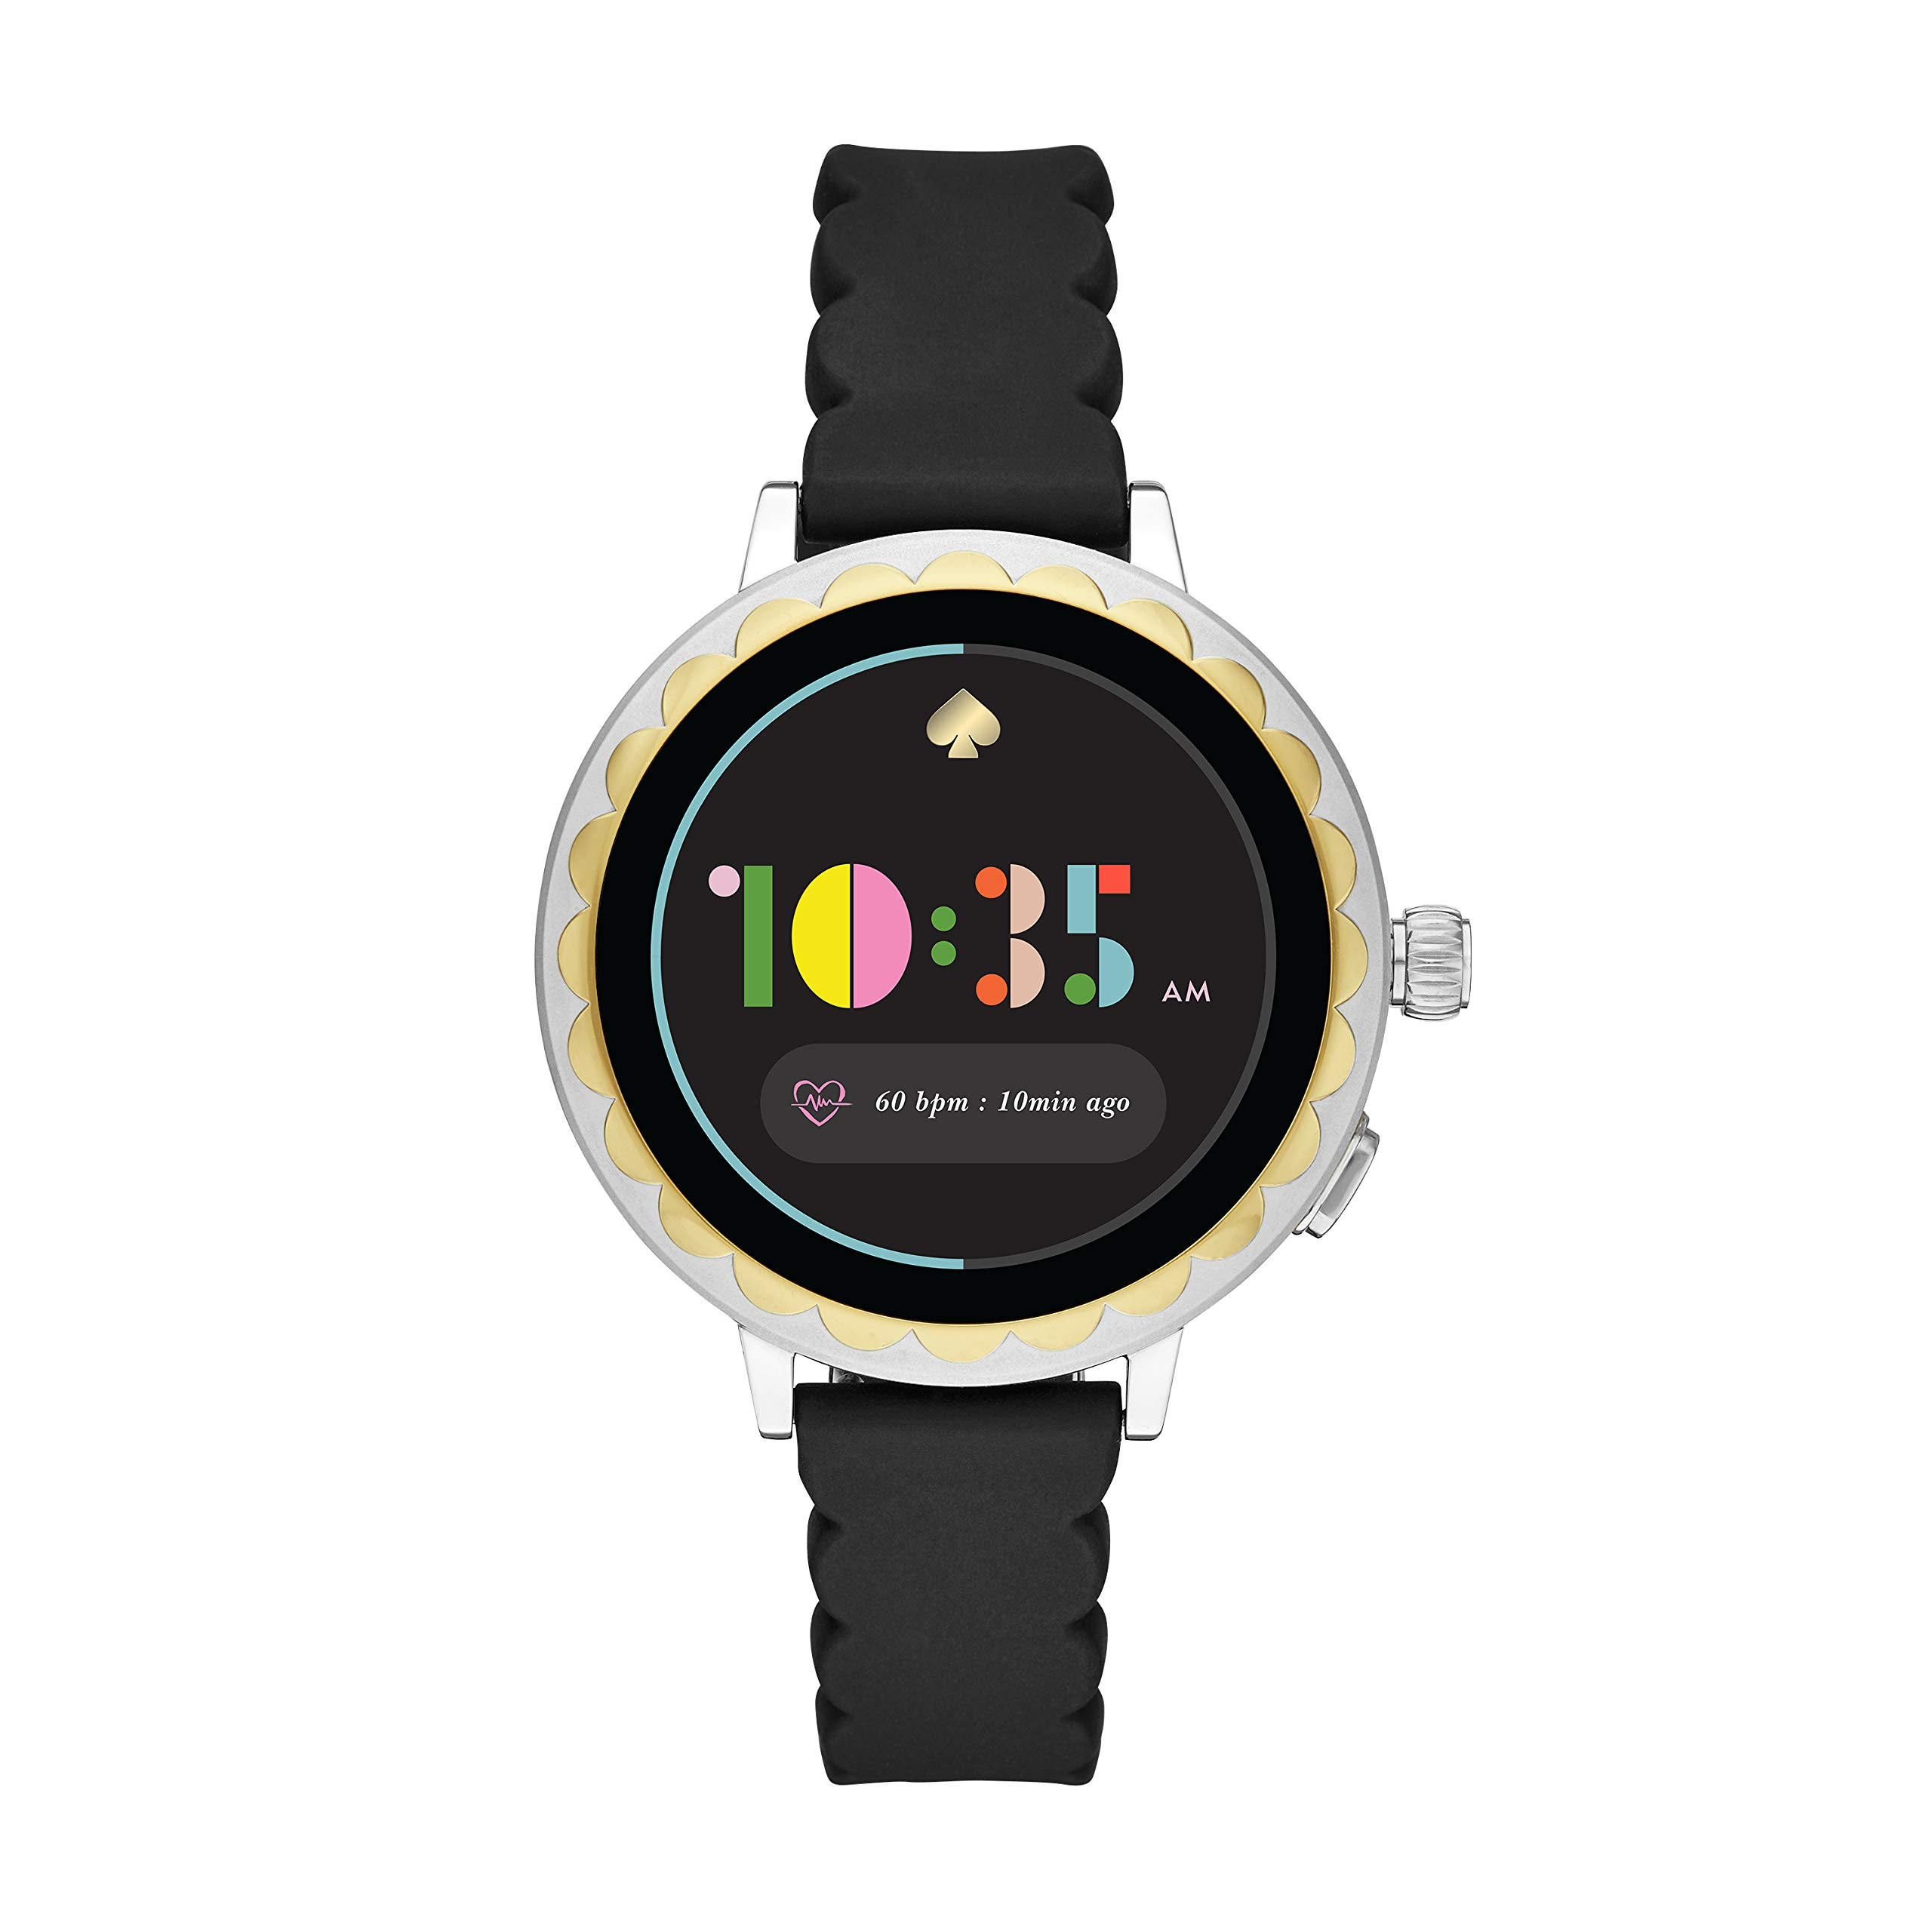 Kate Spade New York Women's Scallop 2 Stainless Steel Touchscreen smartwatch Watch with Silicone Strap, Black, 16 (Model: KST2008